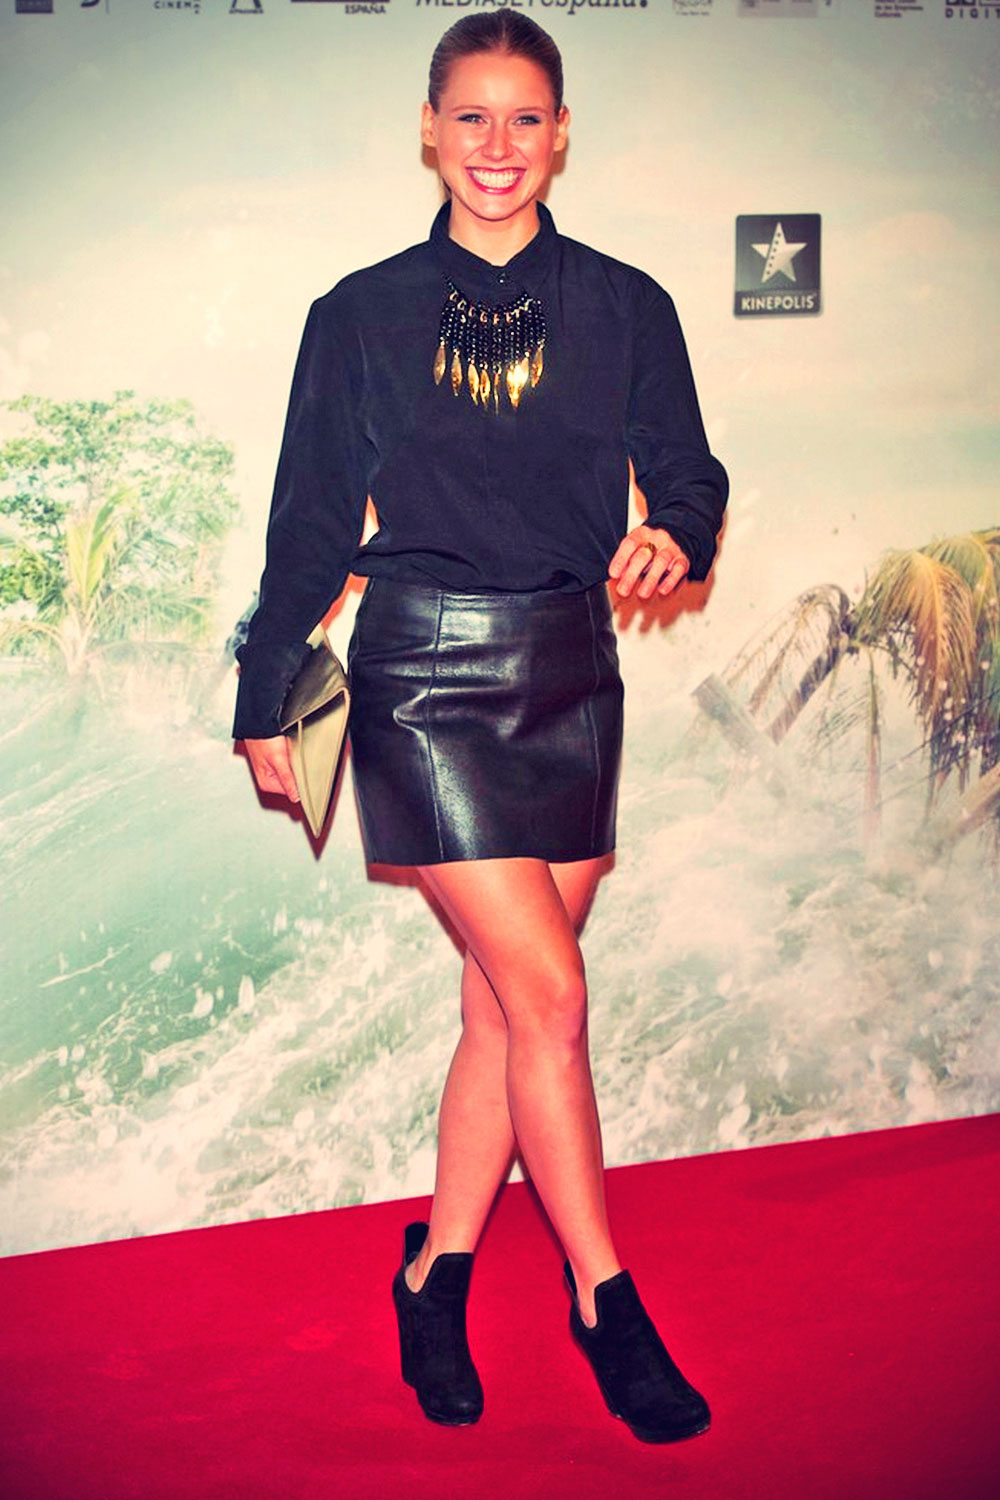 Manuela Velles attends Premiere of The Impossible